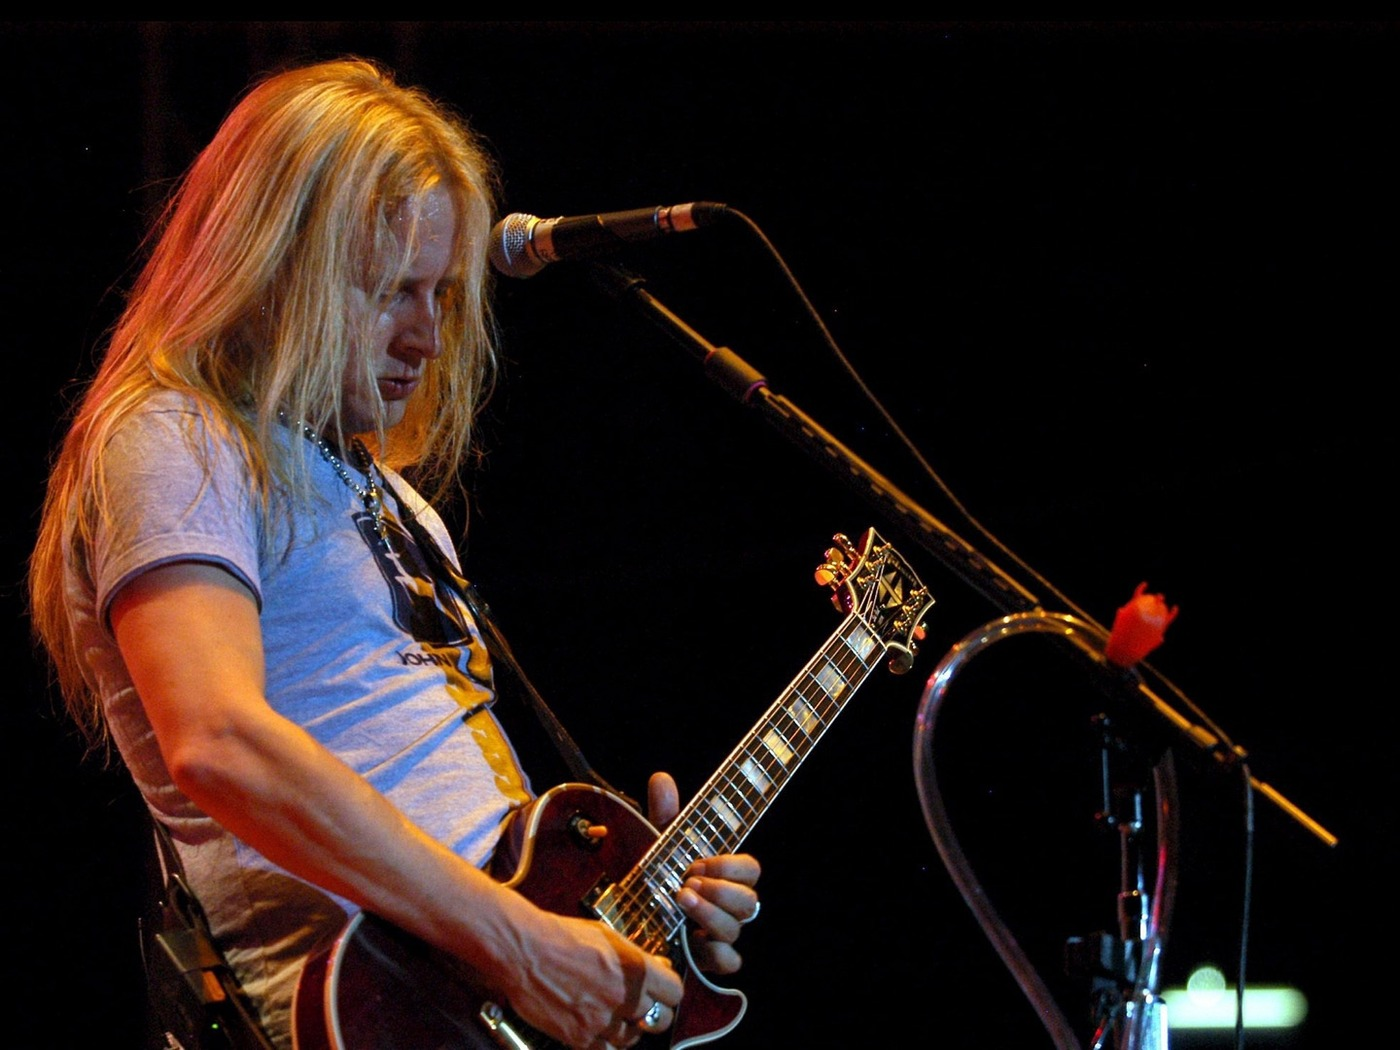 Download wallpaper 1400x1050 jerry cantrell guitar microphone 1400x1050